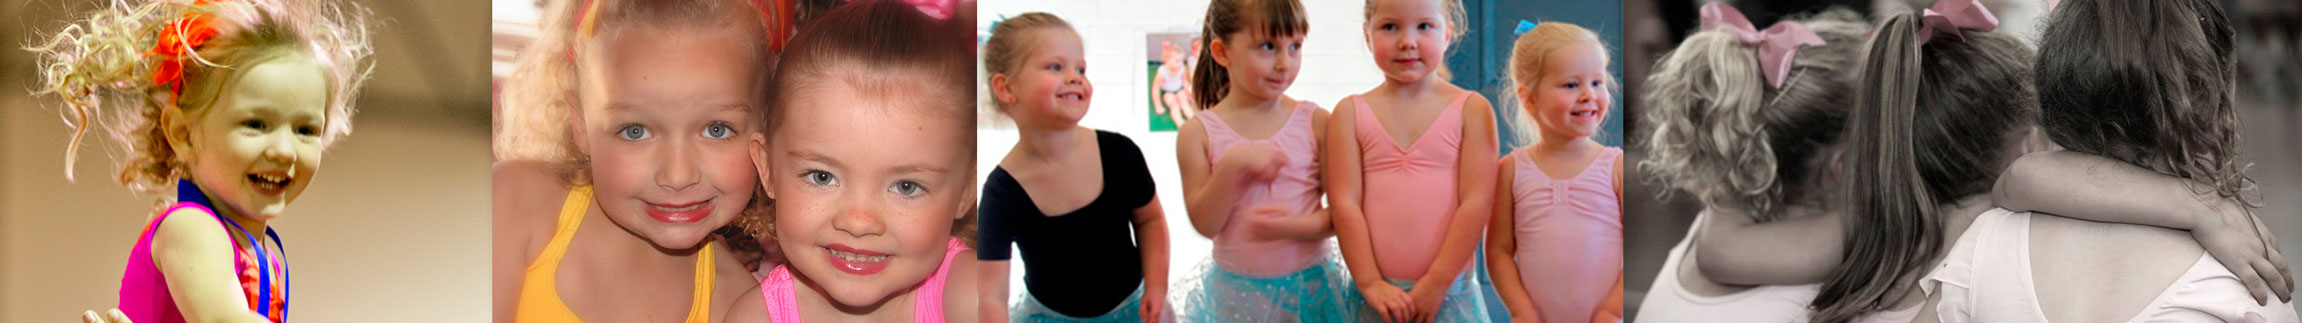 Classes at Template Physie - for preschool girls teens and ladies aged 3 years old and up